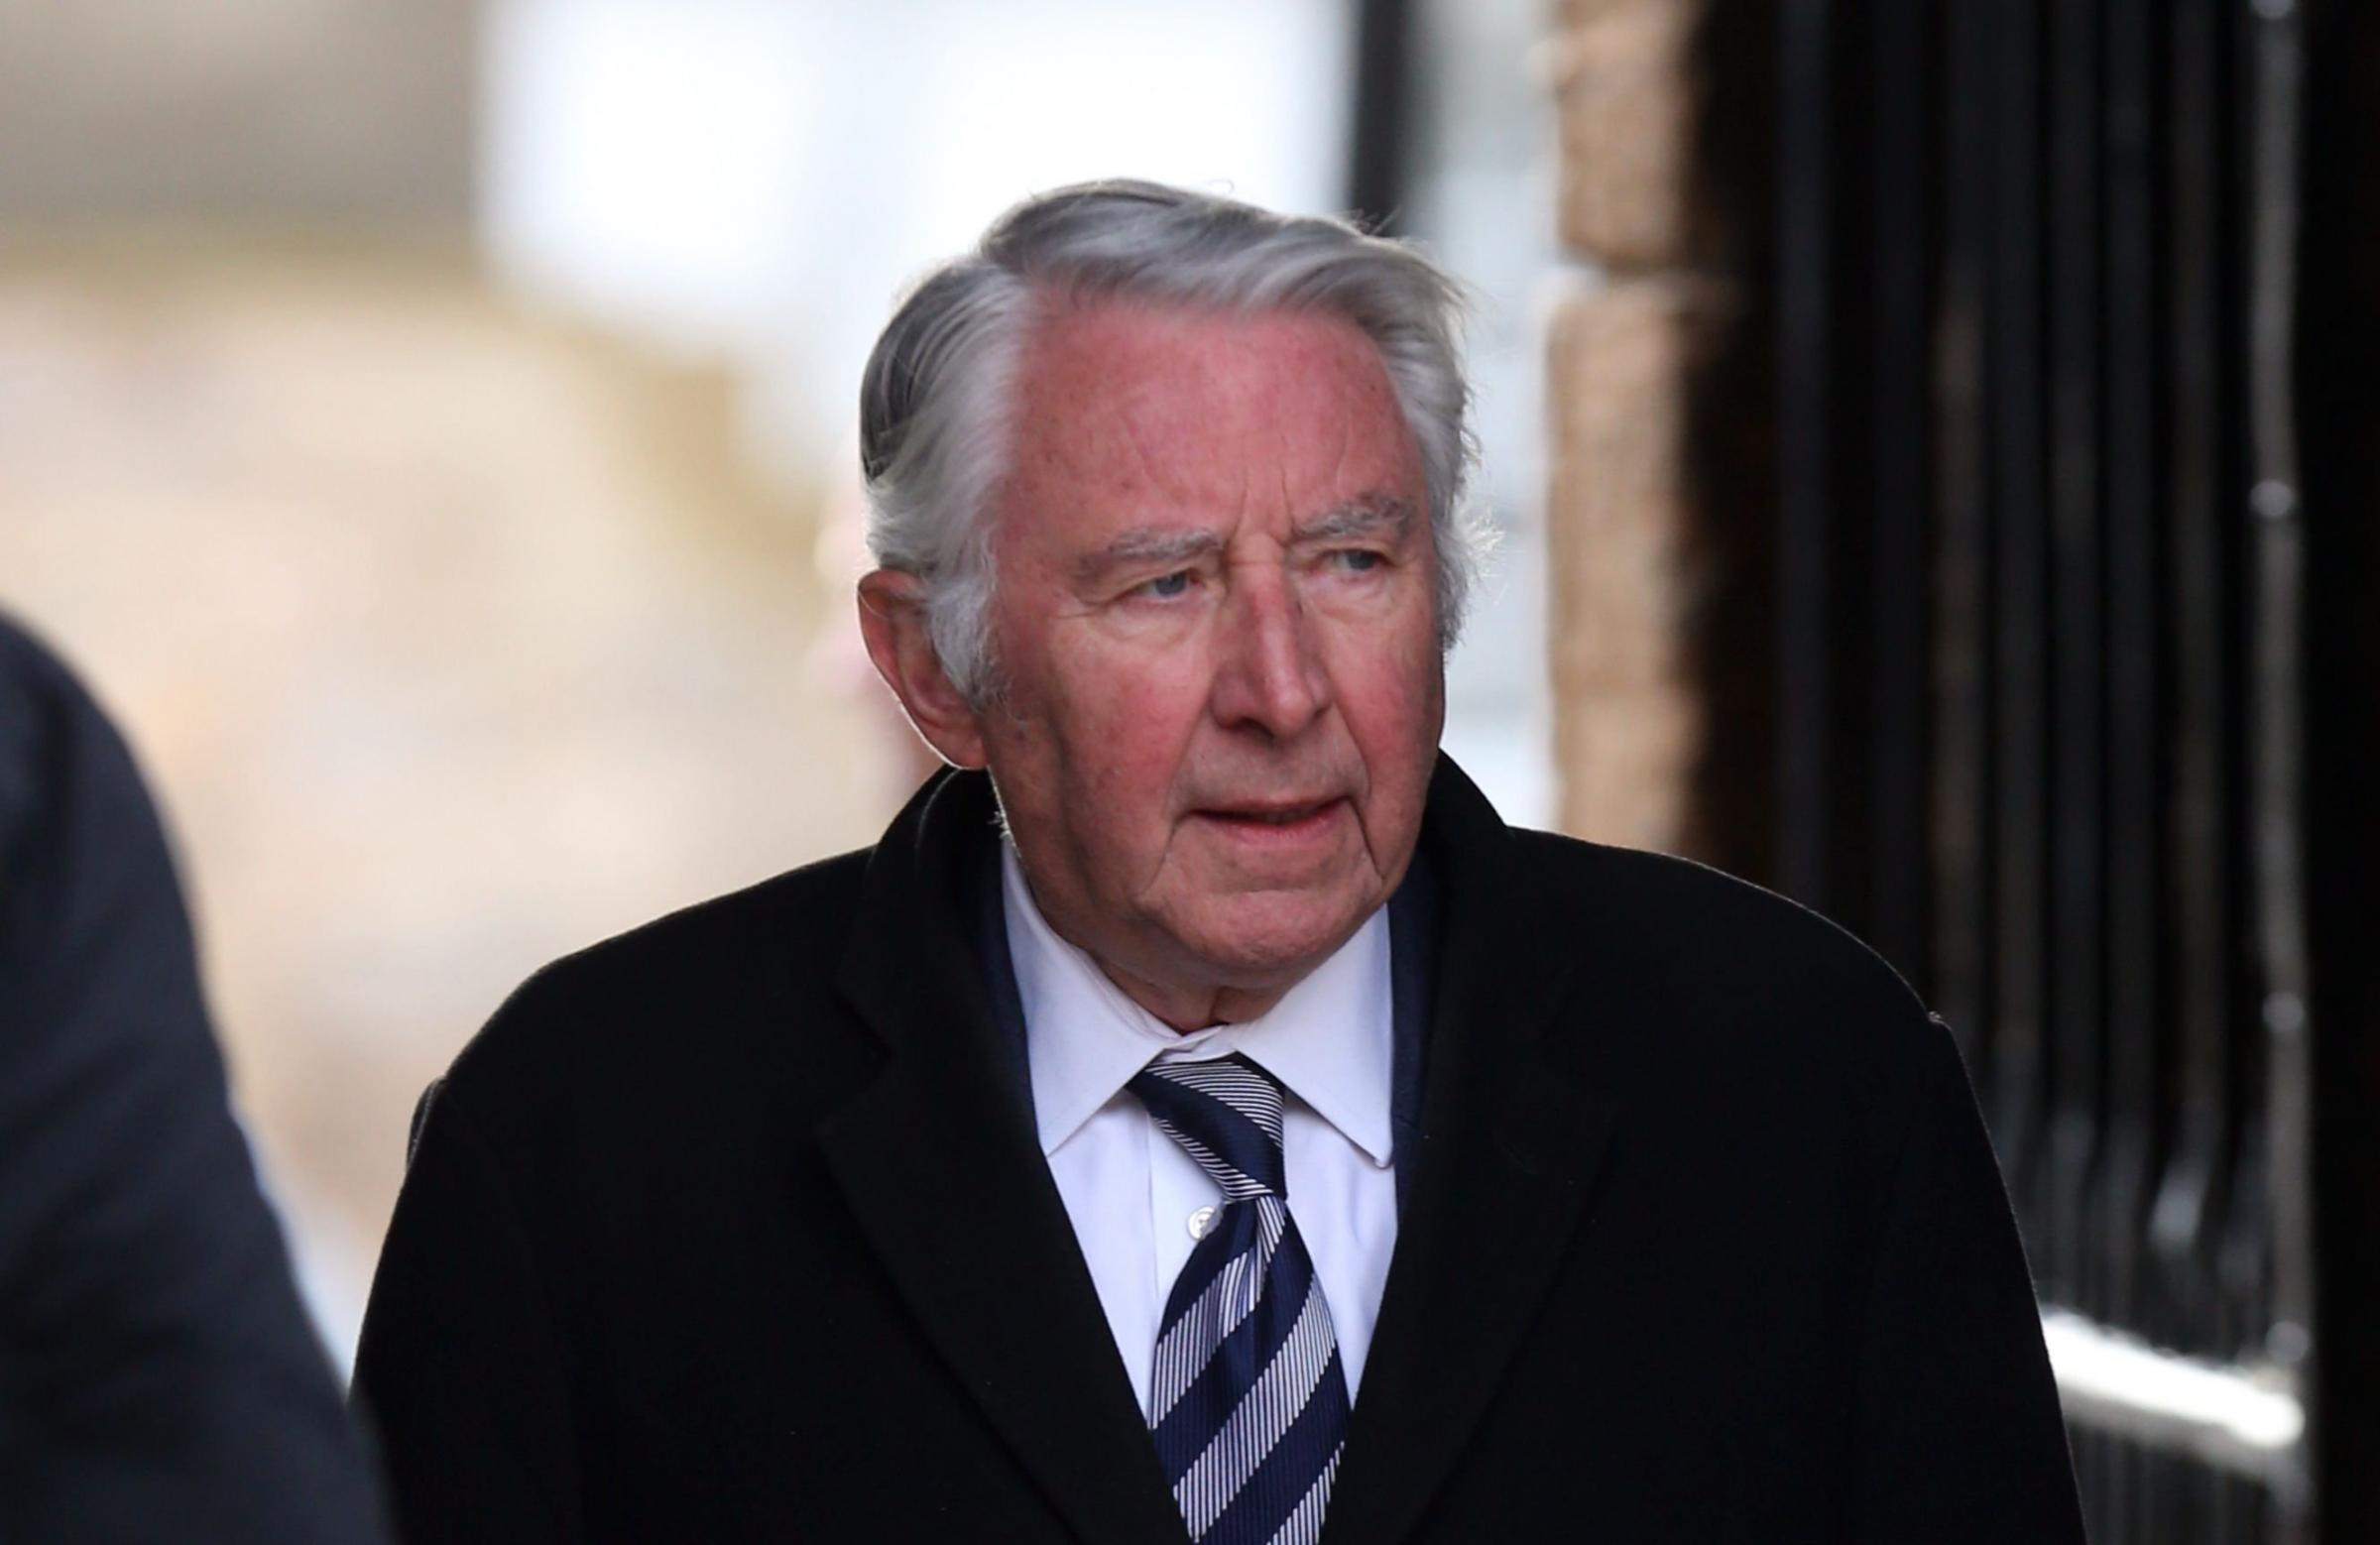 LibDems suspend David Steel over lack of action on Cyril Smith paedophile revelations